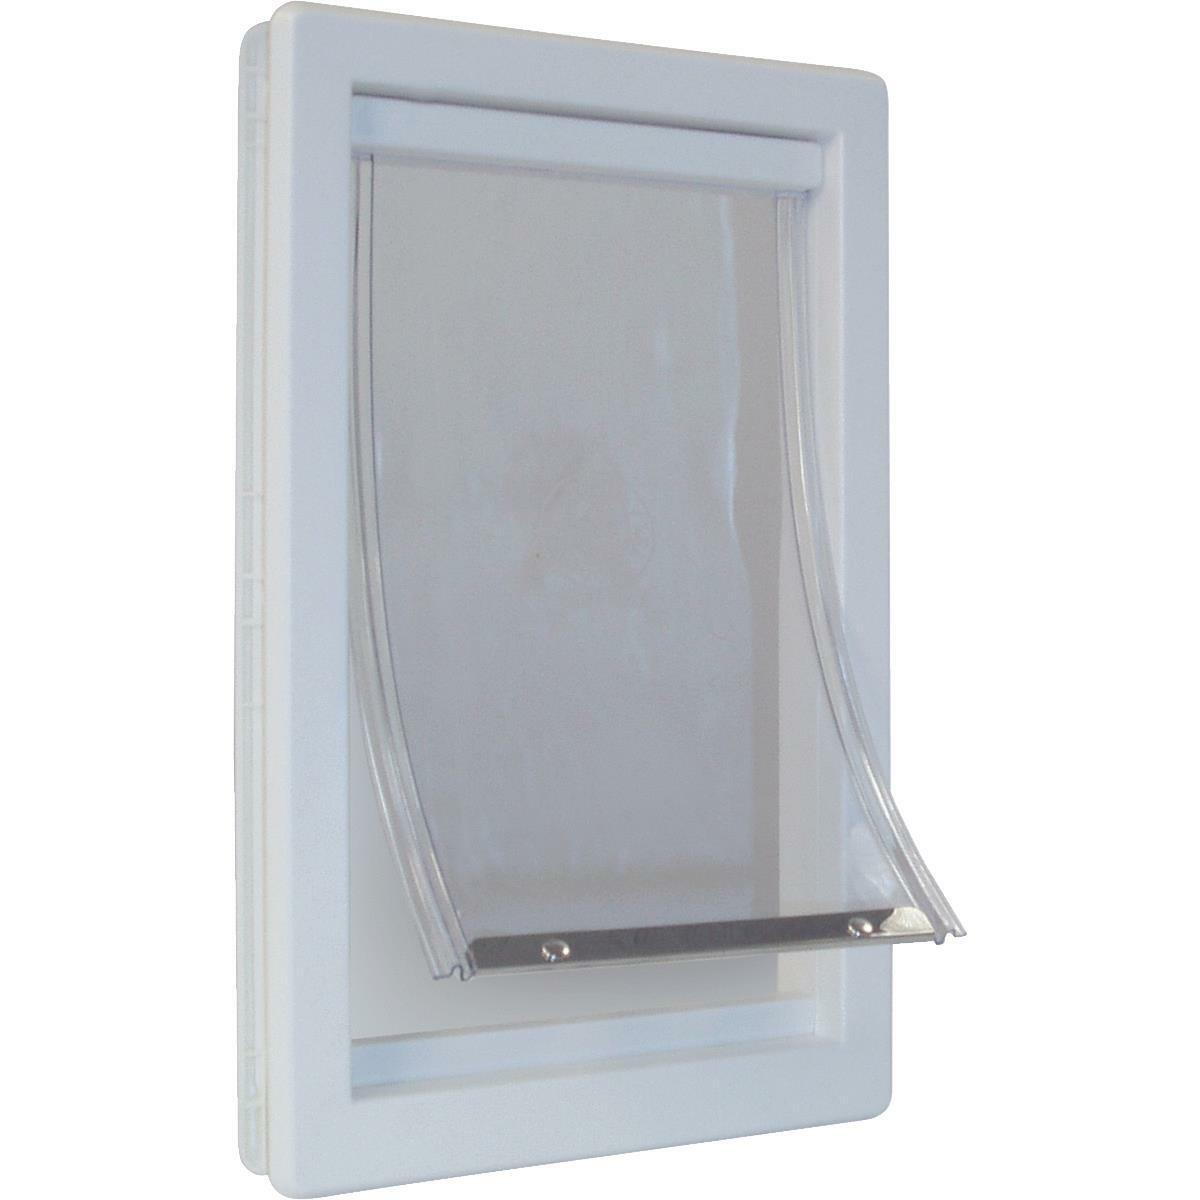 Ideal Ideal Ideal Pet Super Lrg Plstc Pet Door 28f502